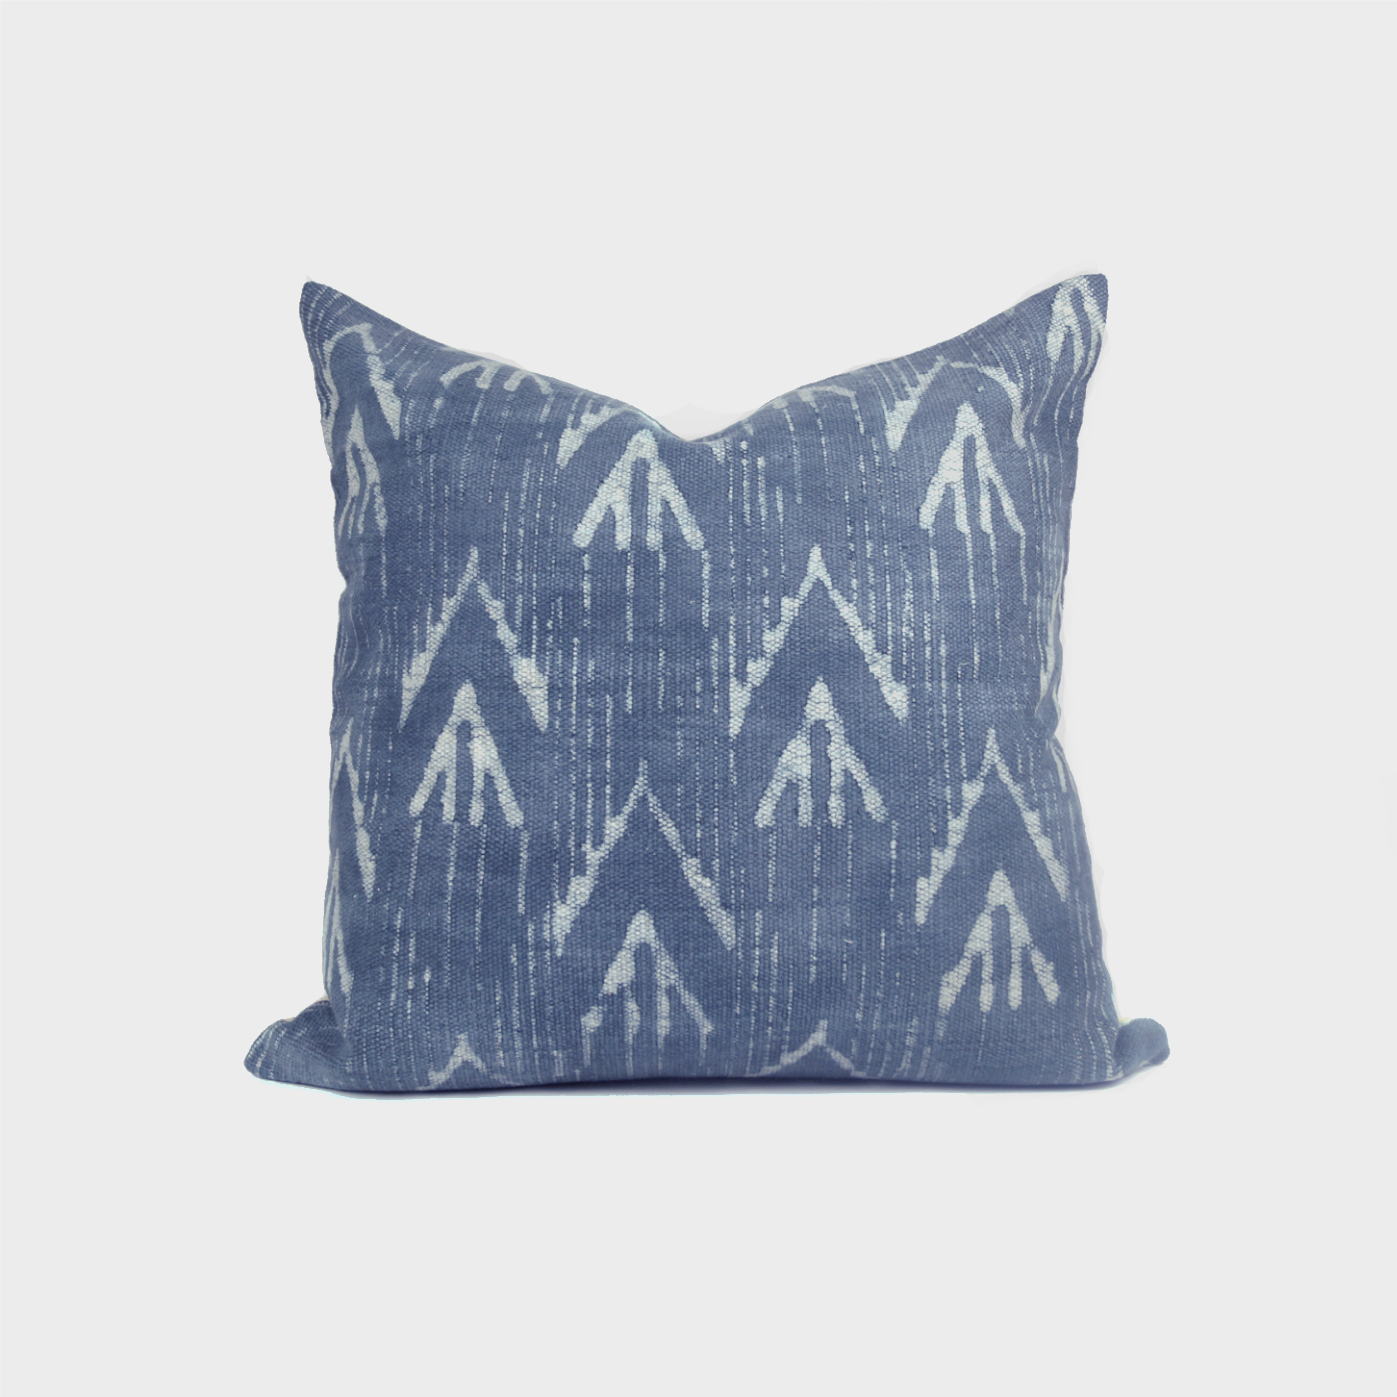 MADERA CUSHION COVER - HUNTER & CO.